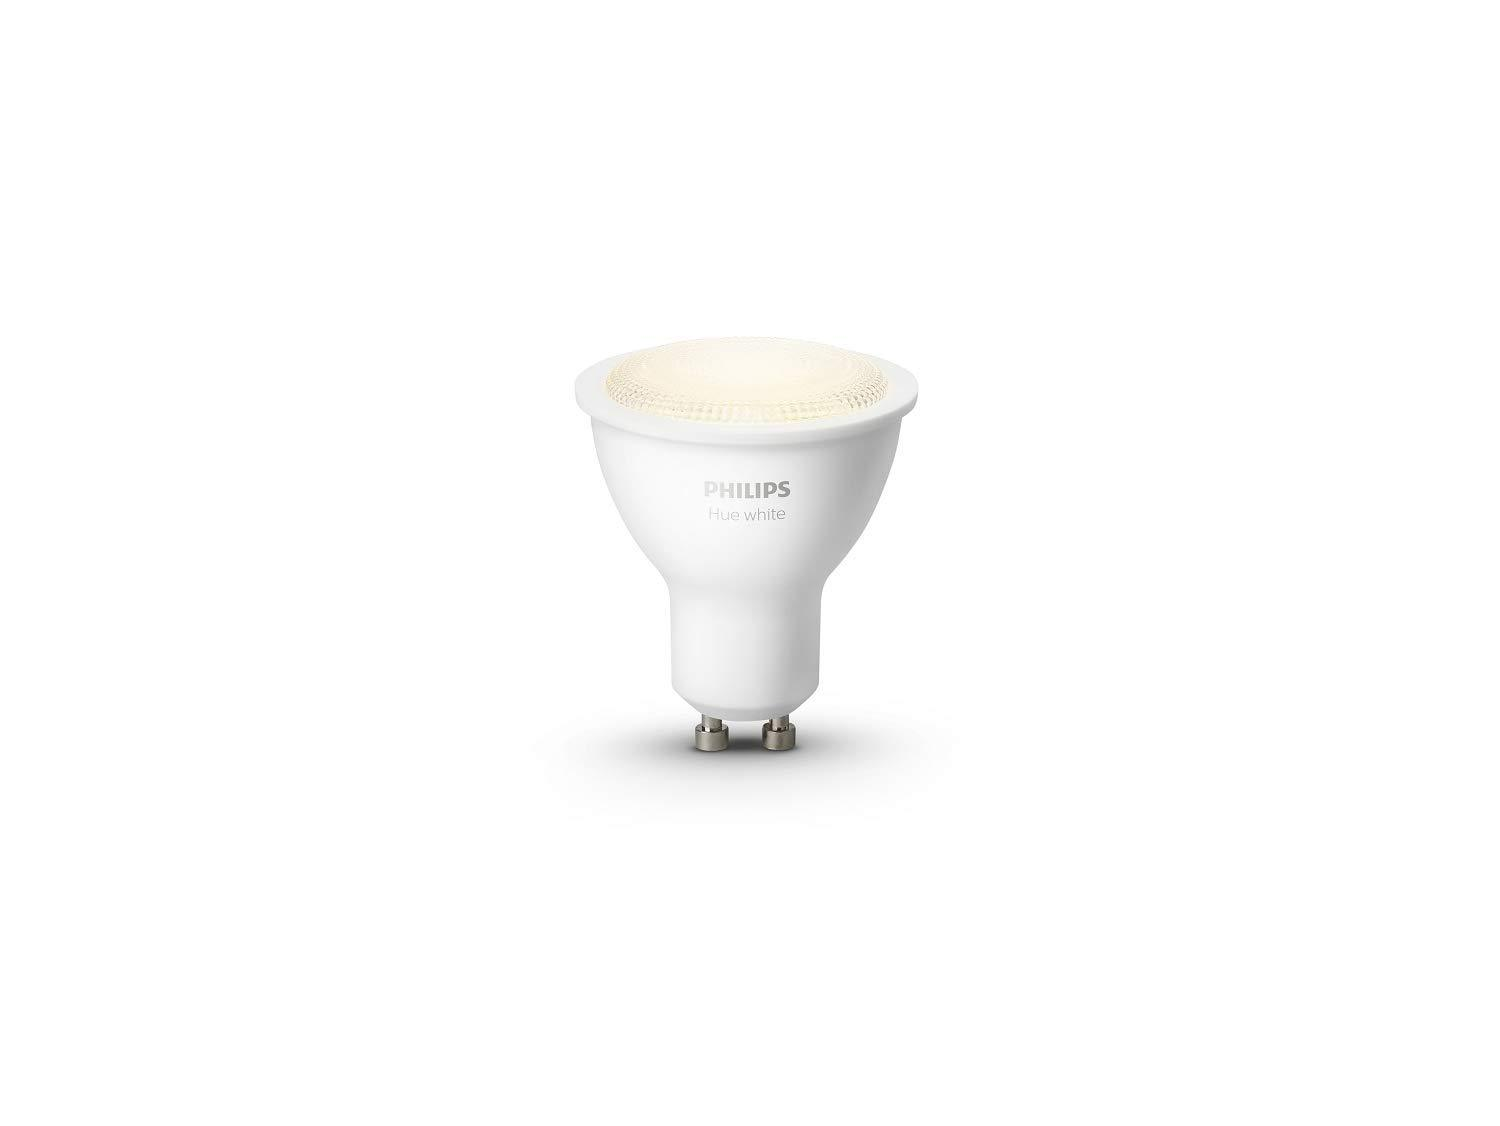 Philips Hue White (GU10, 300lm, 5.5 W) - Glühbirnen - digitrends.ch